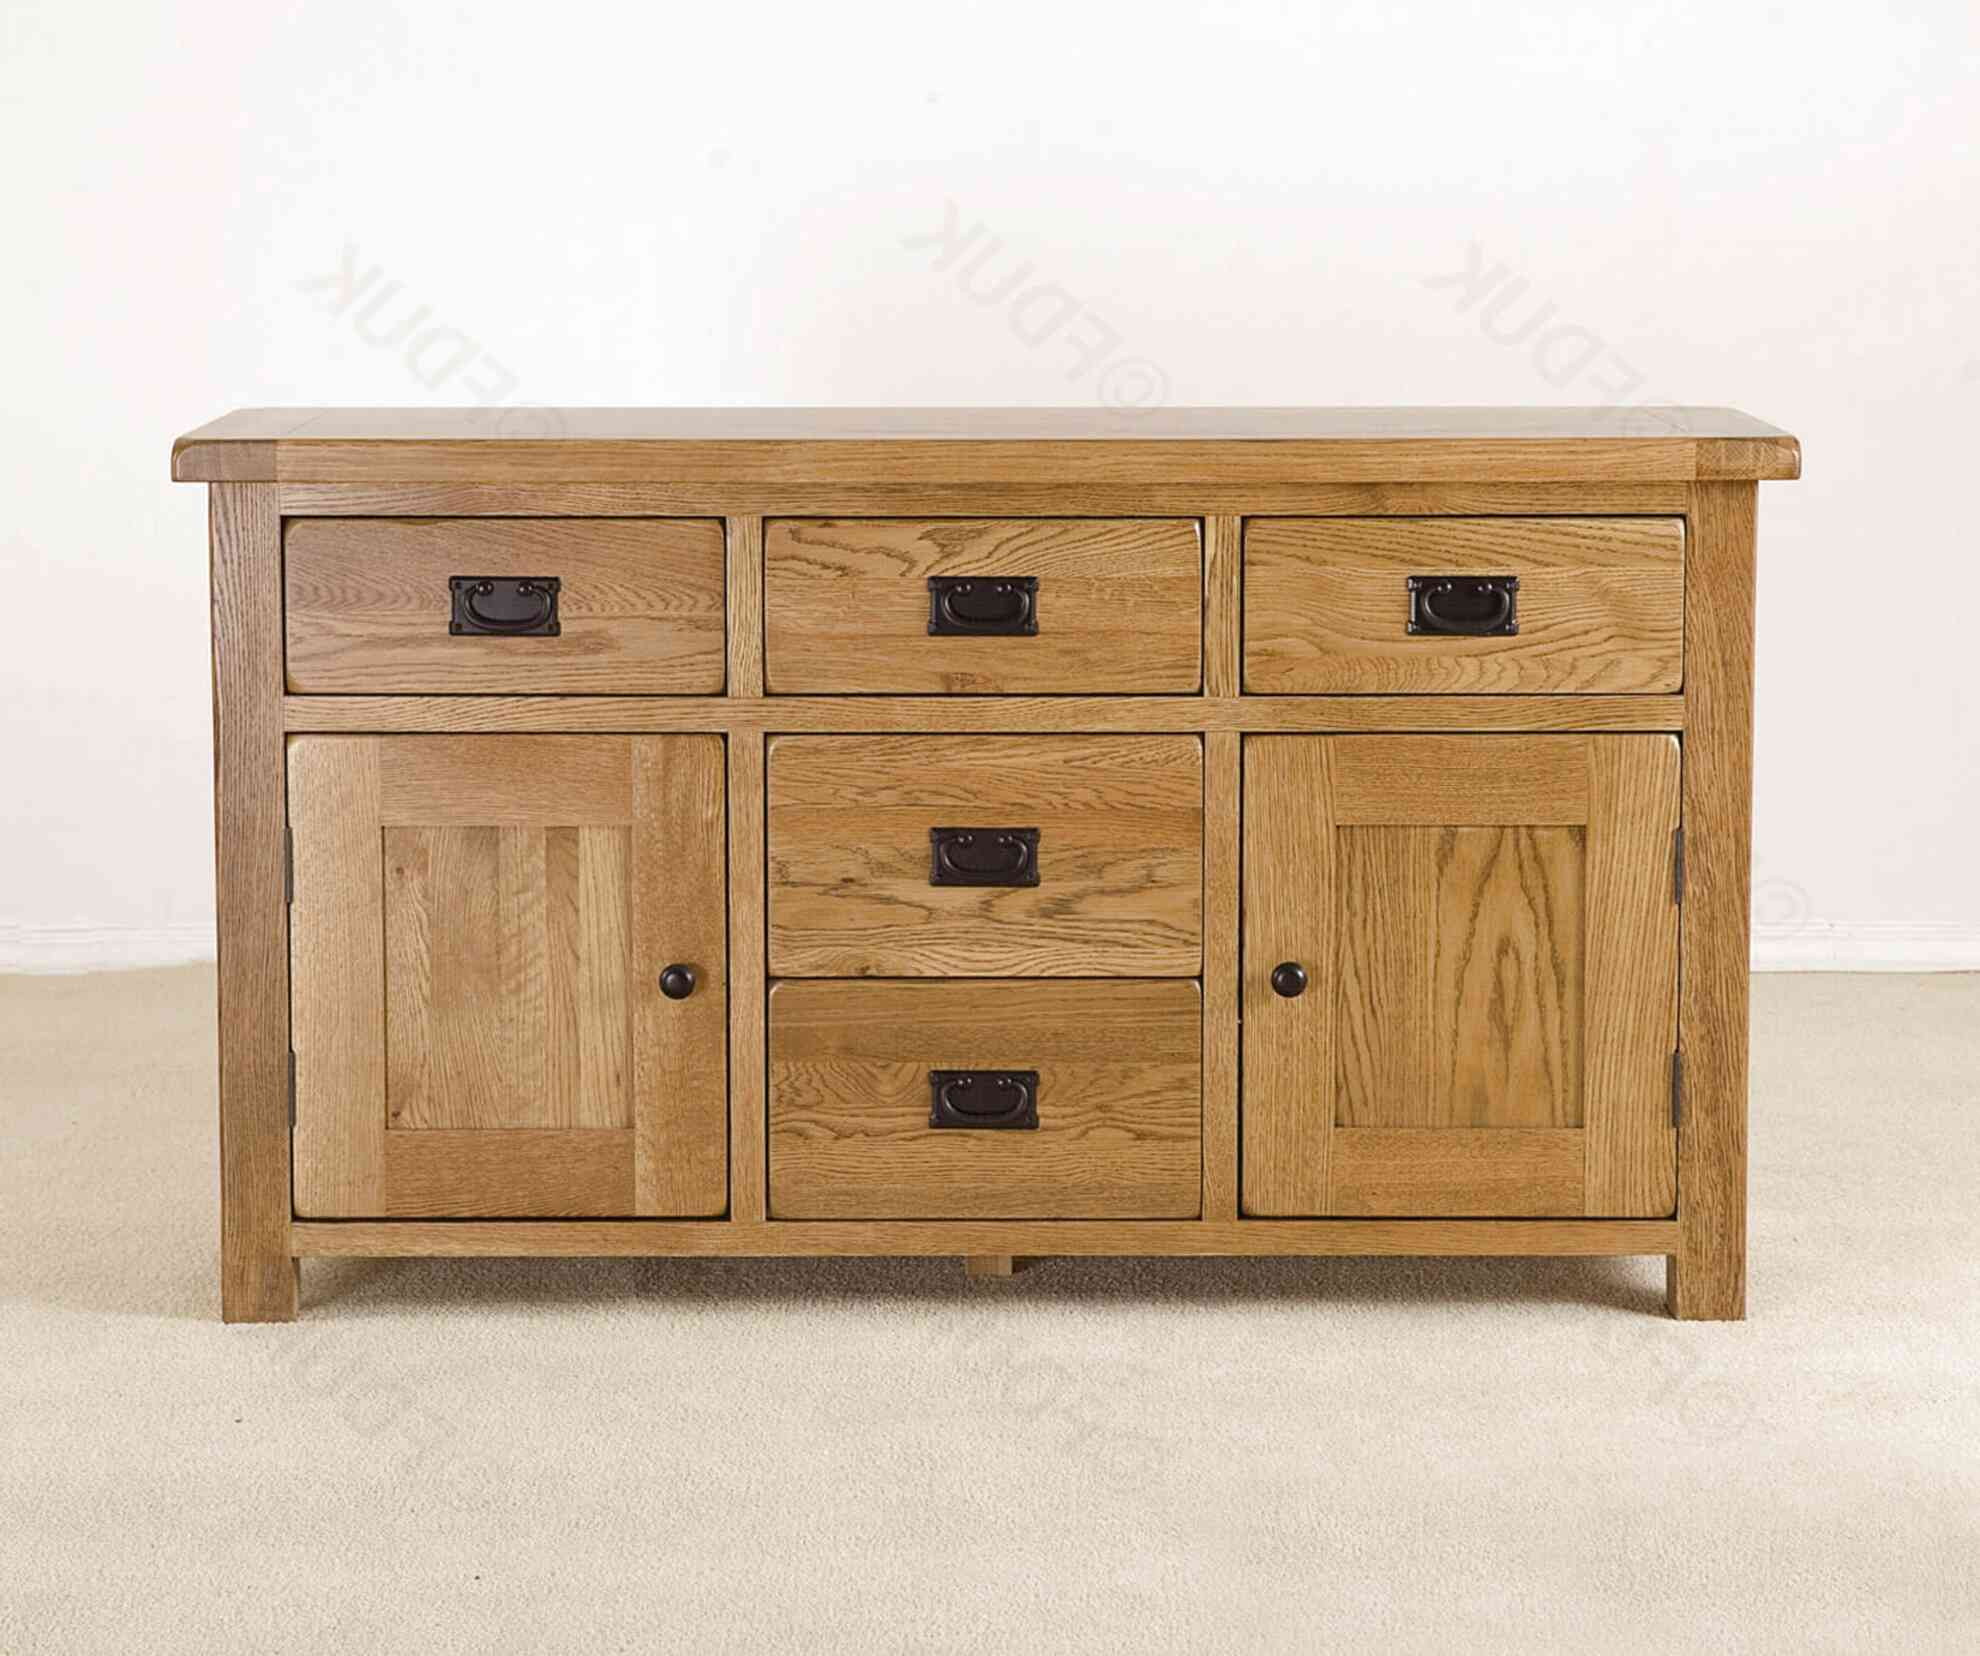 oak dresser with cupboards and drawers for sale